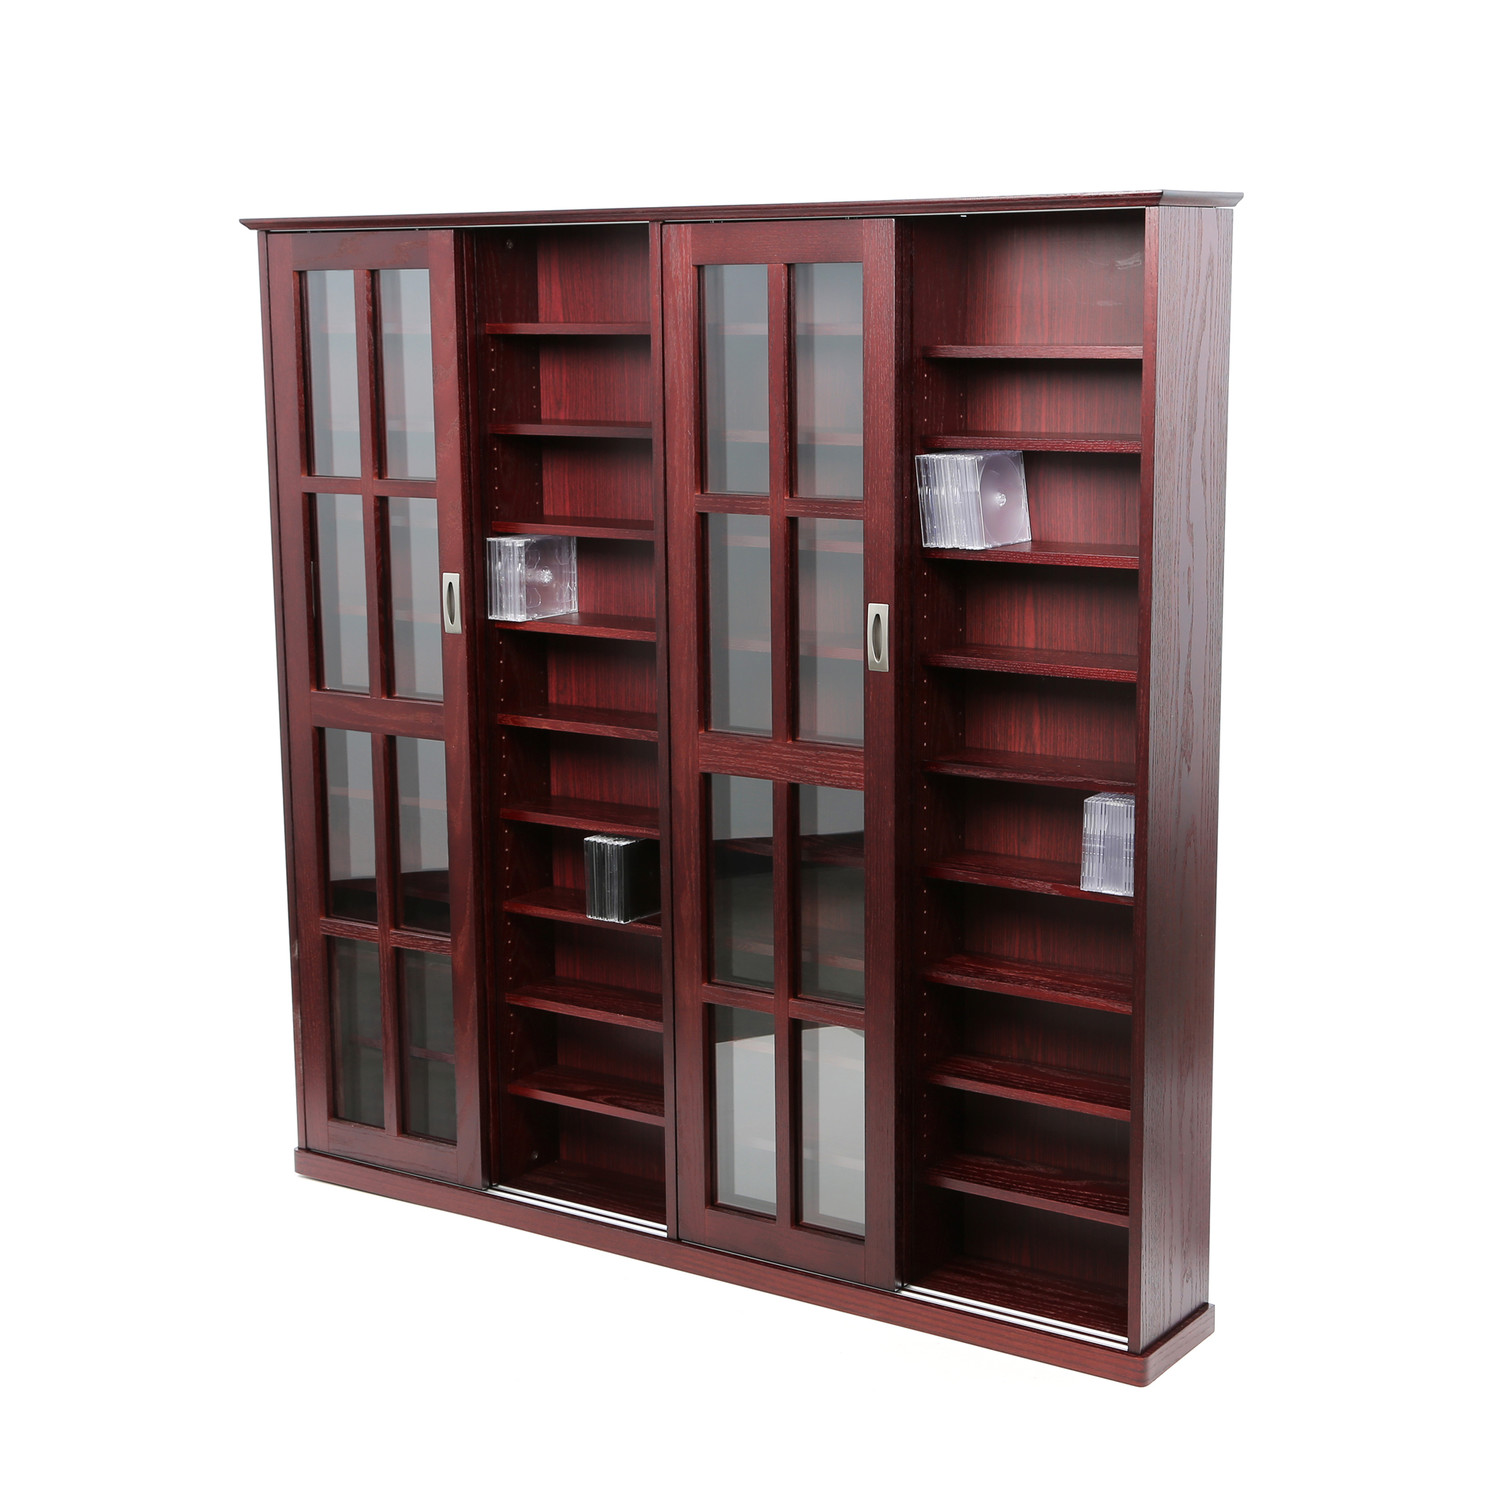 Decorative Storage Cabinets with Glass Doors You Should